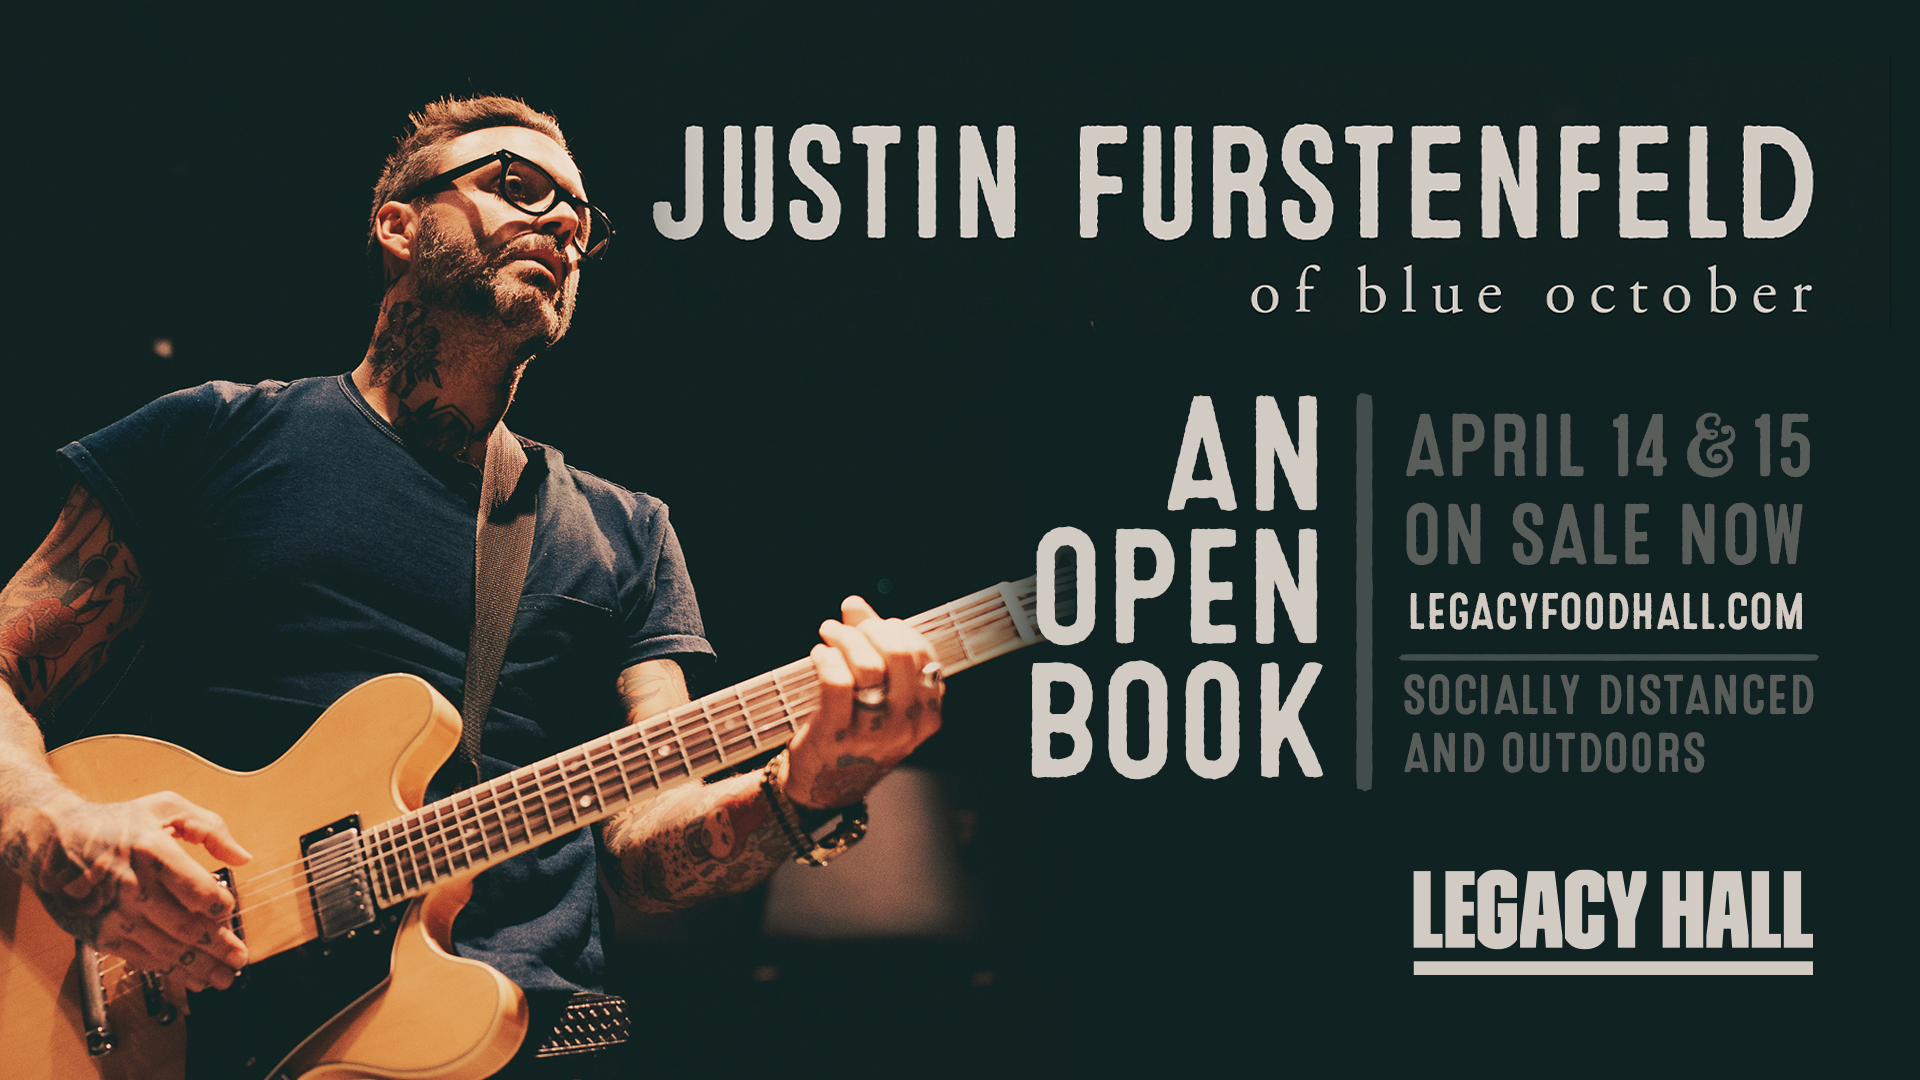 Promo image of Justin Furstenfeld of Blue October | April 15